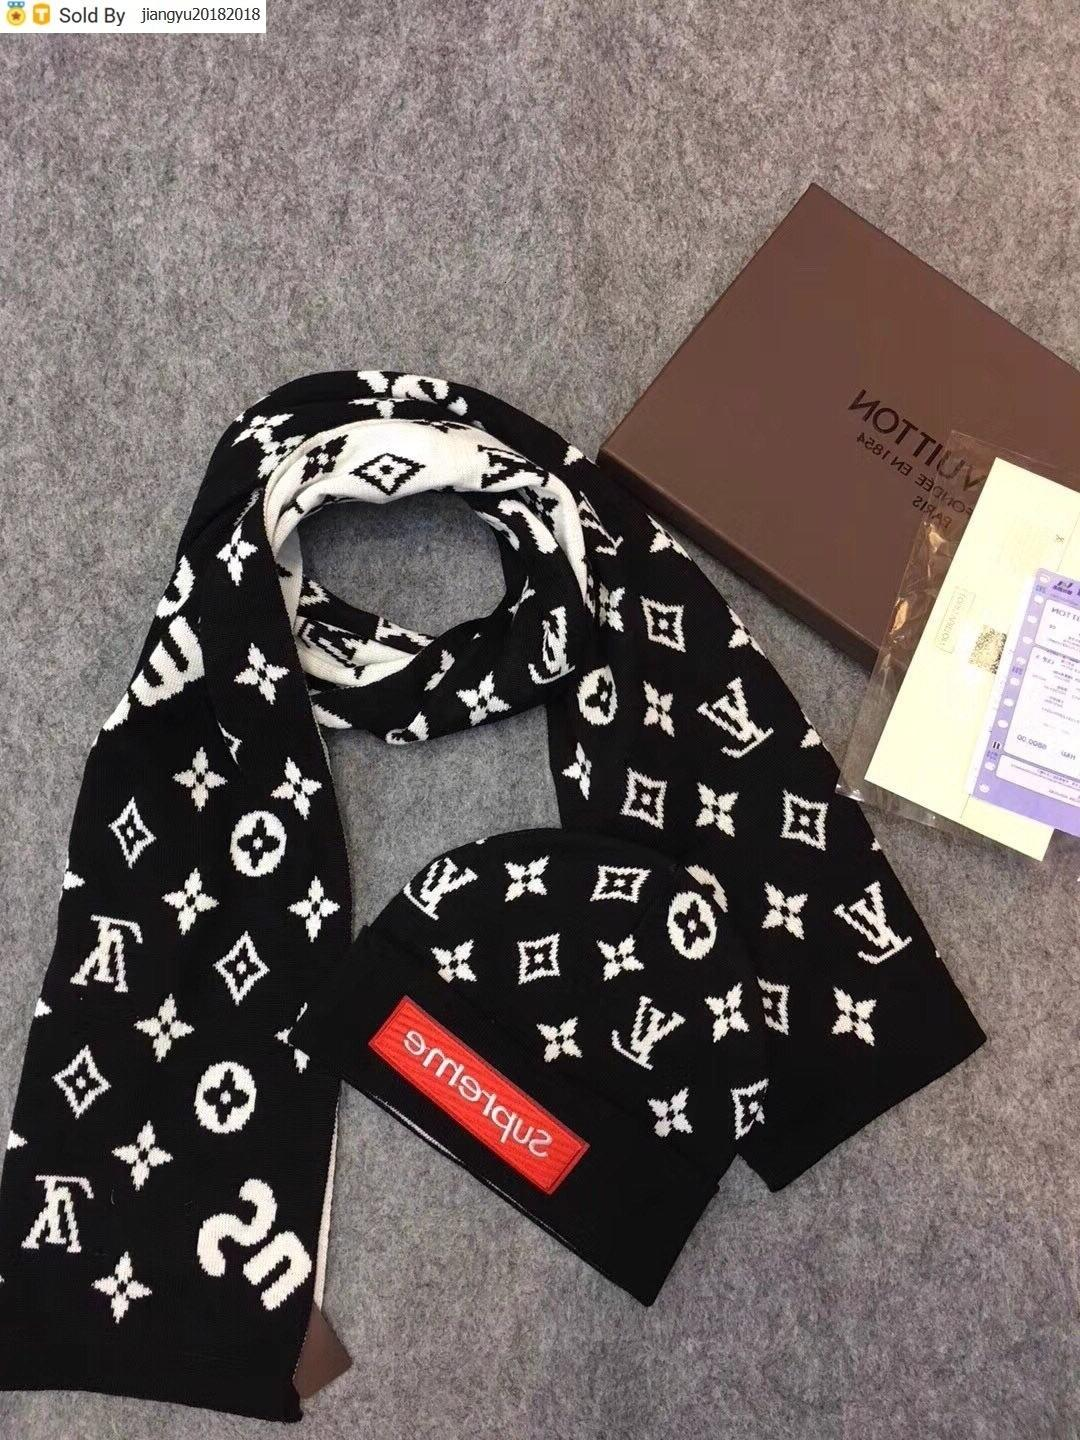 Christmas Gift Quality Printing Woolen Scarf Cap Set Men Cashmere wool Scarf hat 2pc PETIT DAMIER M70930 007 With Box